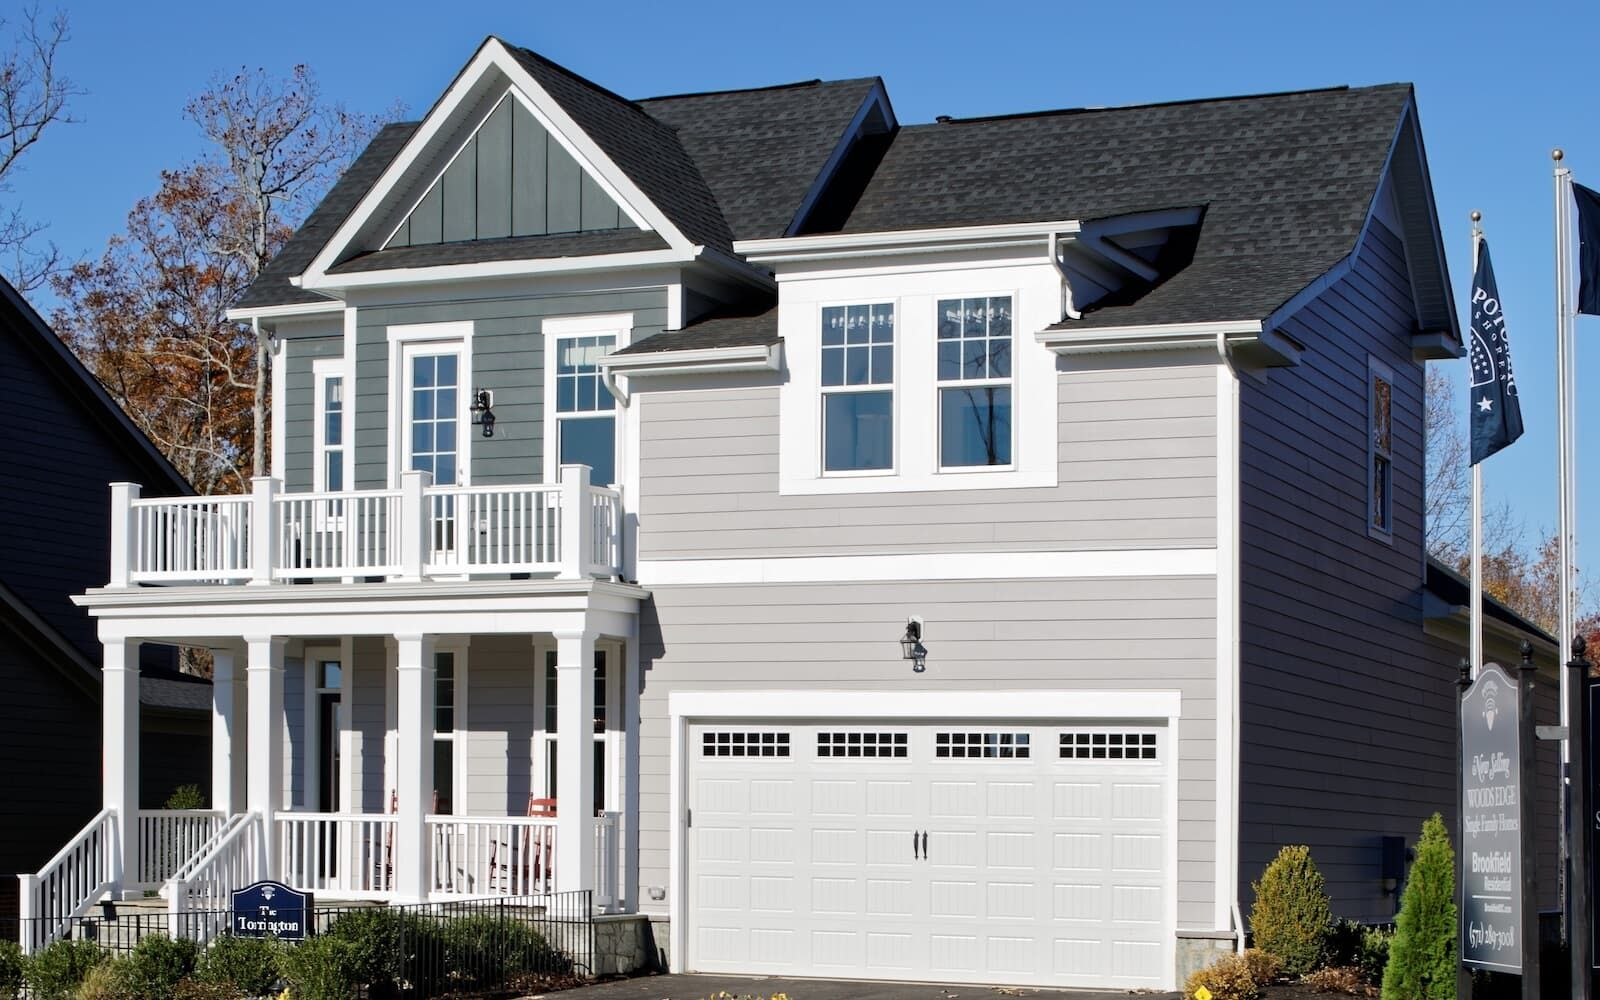 Exterior:An exterior view of the Torrington by Brookfield Residential at Potomac Shores